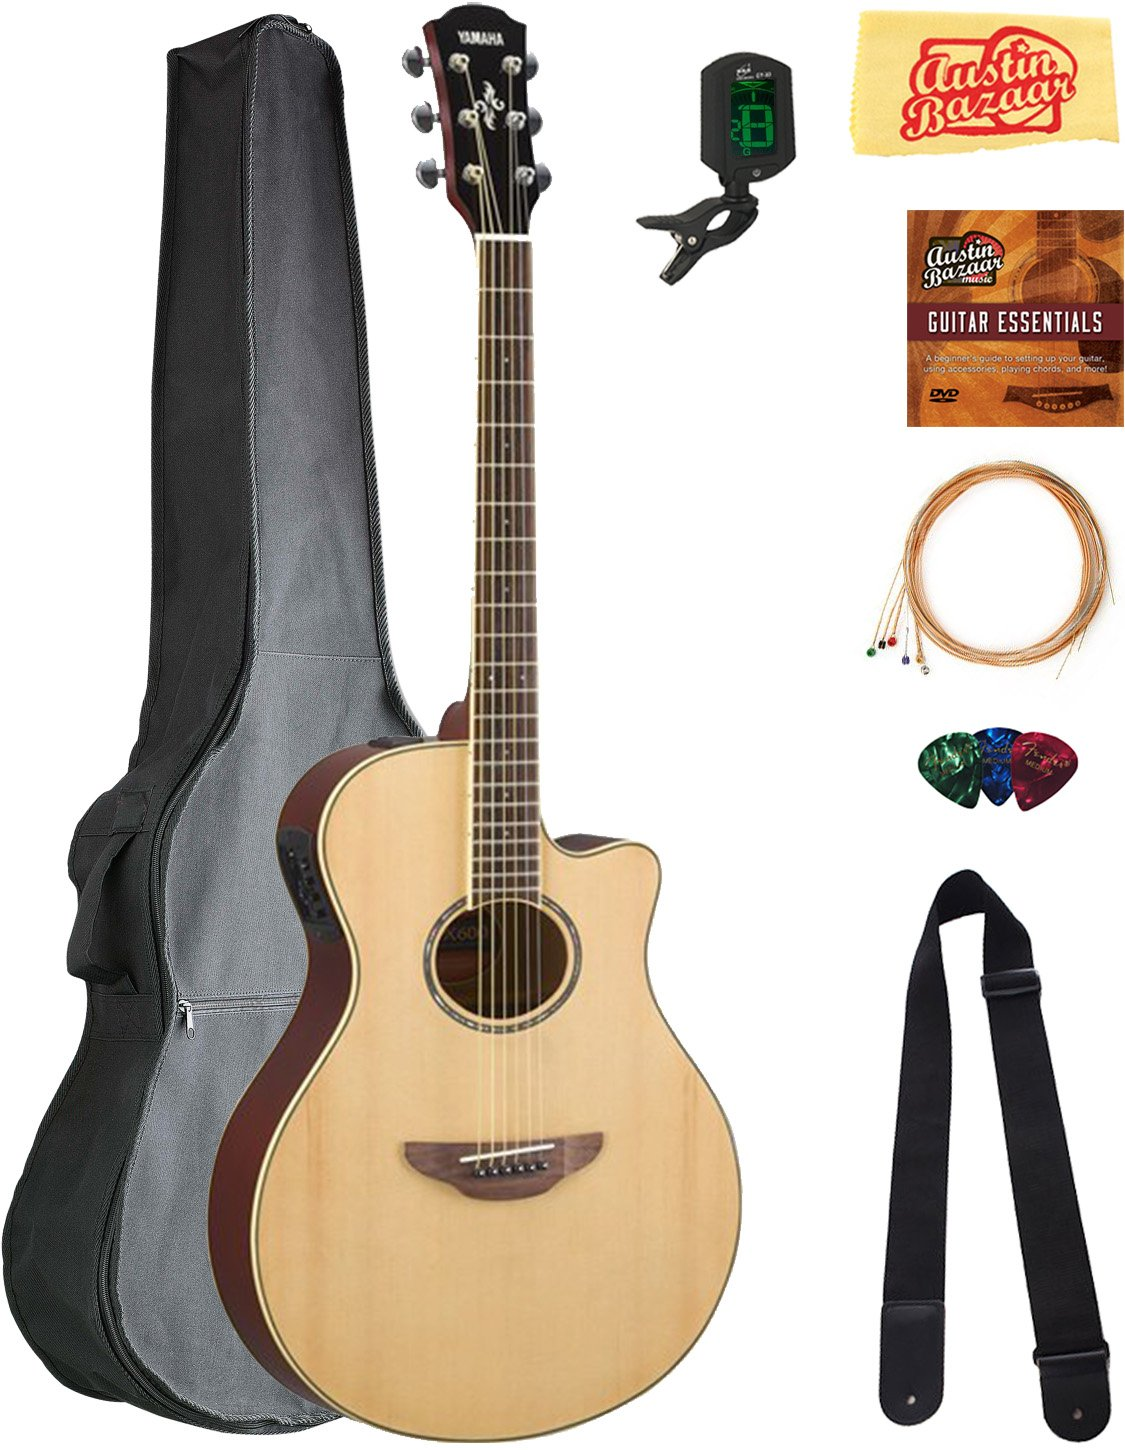 Yamaha APX600 Thin Body Acoustic-Electric Guitar - Natural Bundle with Gig Bag, Tuner, Strings, Strap, Picks, Austin Bazaar Instructional DVD, and Polishing Cloth